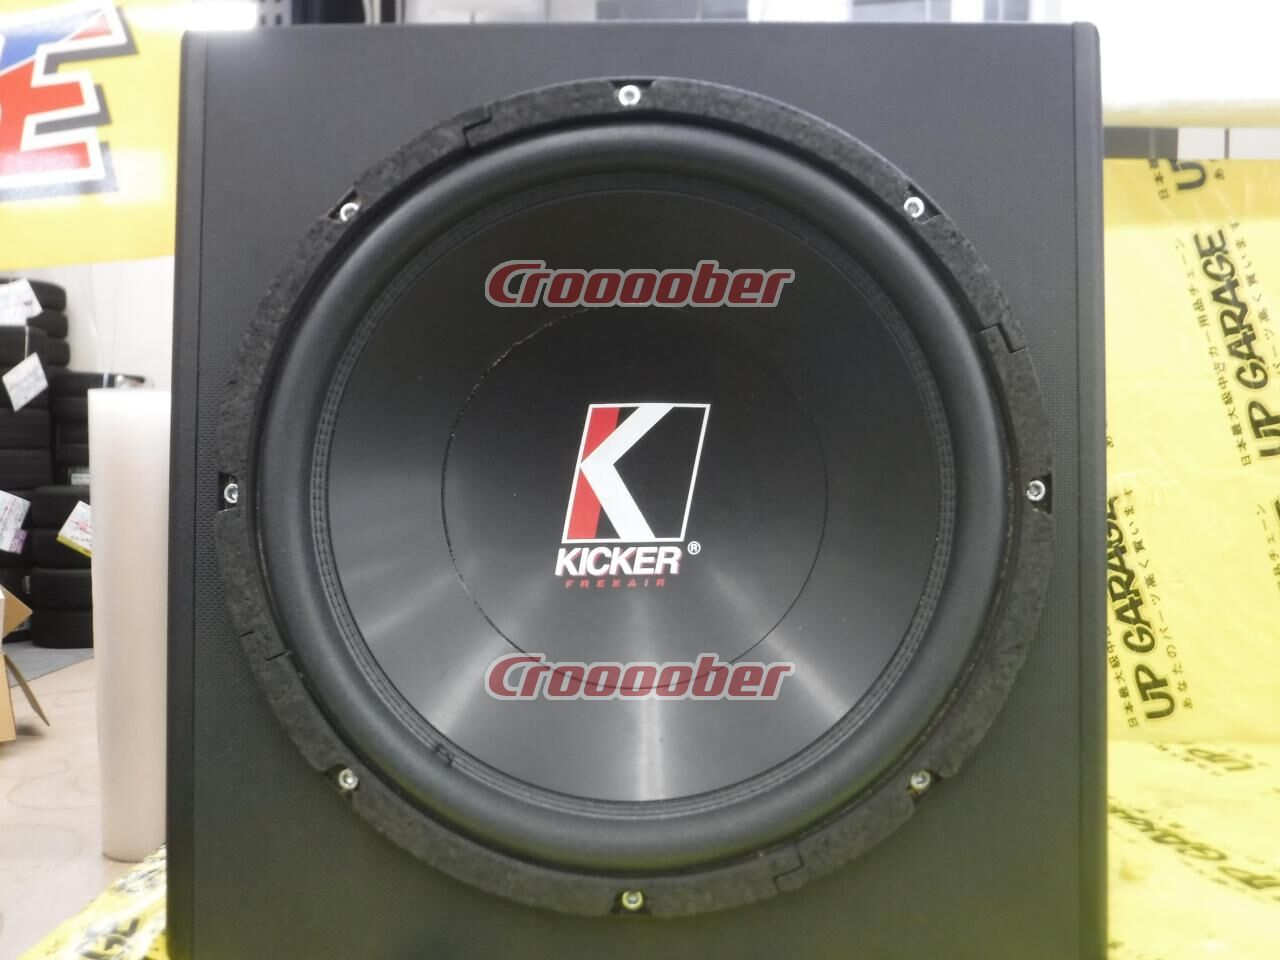 Kicker Freeair 12c Brace Pl 027 Enclosure 12 Inch Sub Woofer With Box Croooober